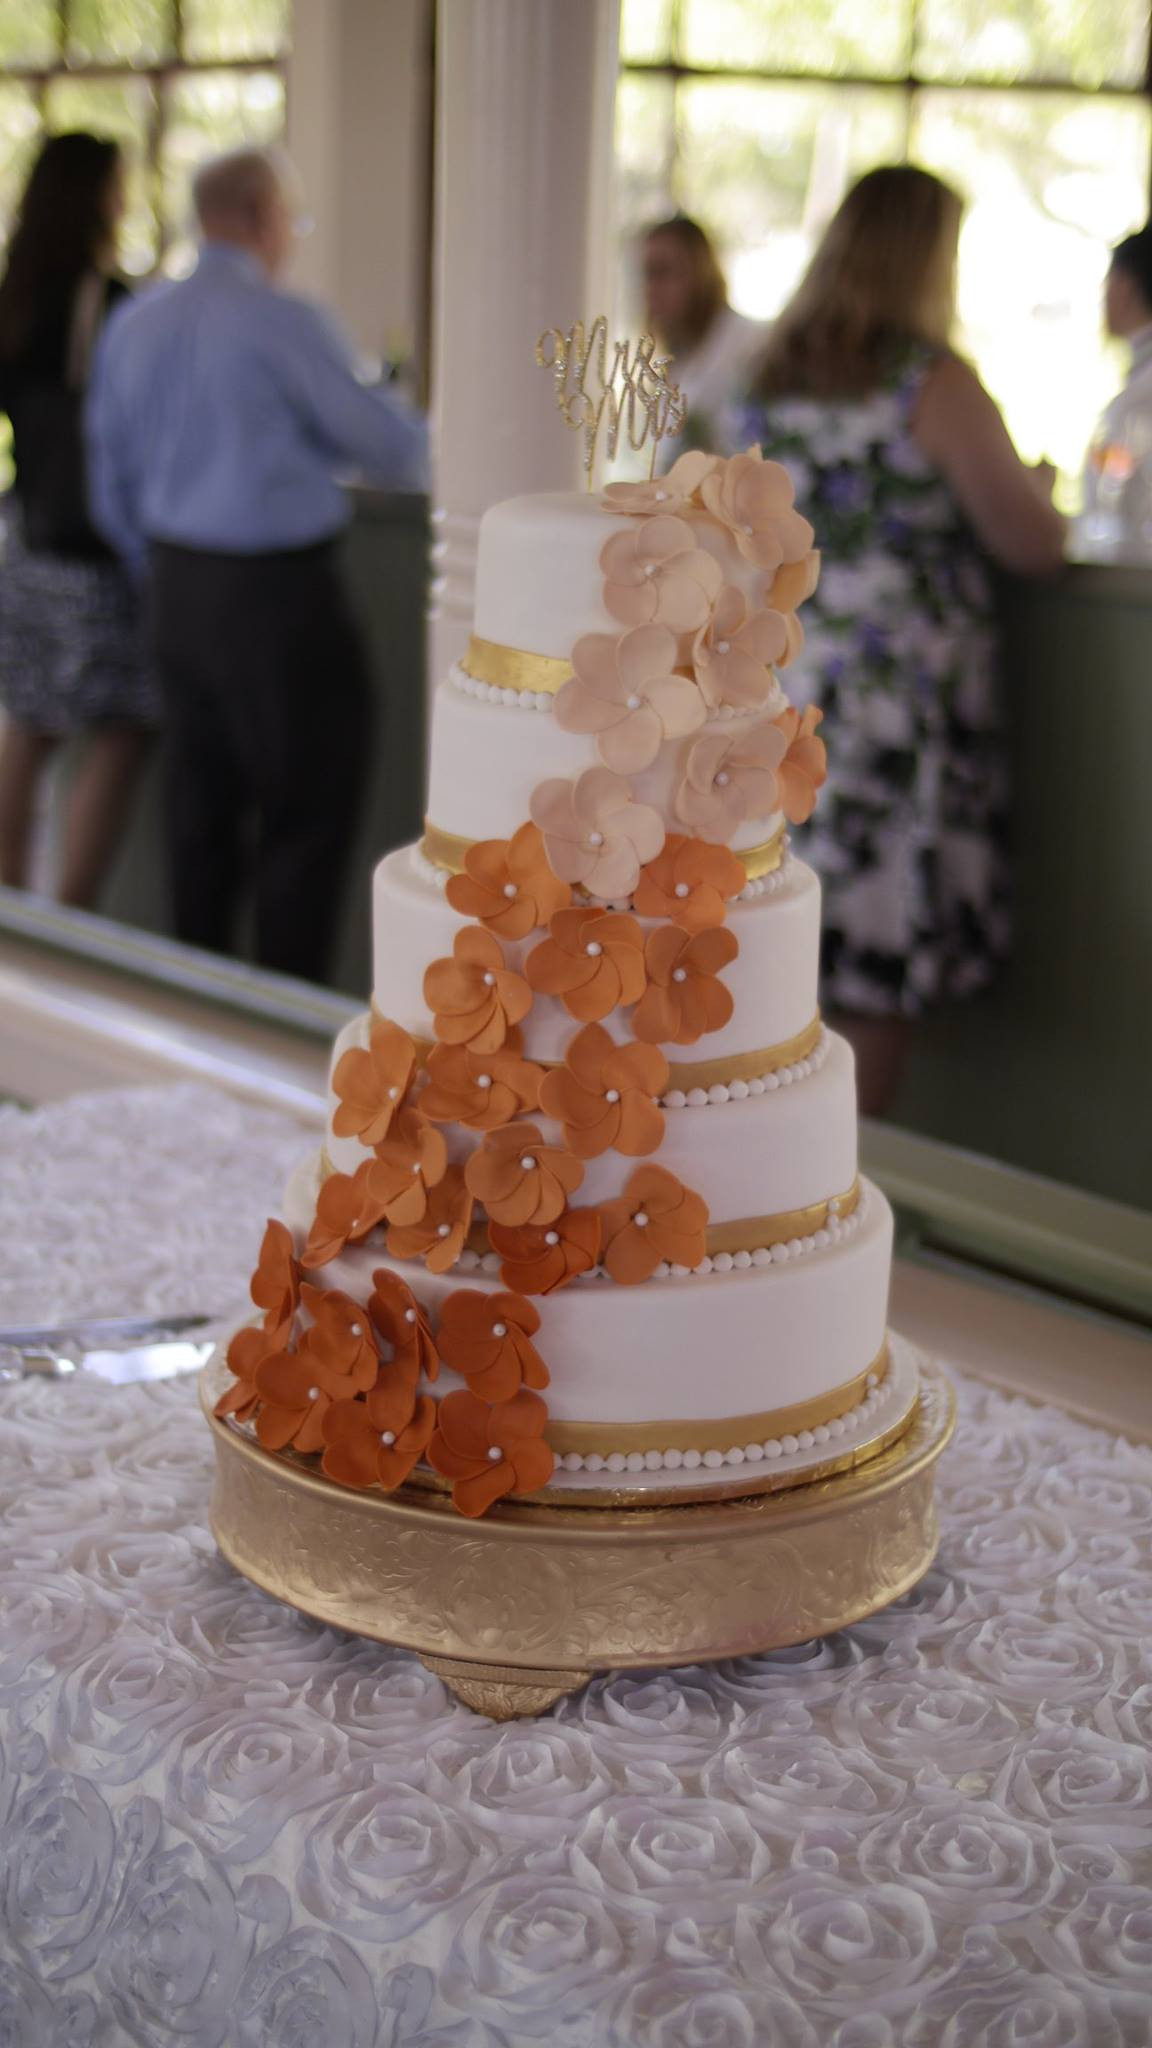 Show Me Wedding Cakes  Show me your wedding cakes Page 3